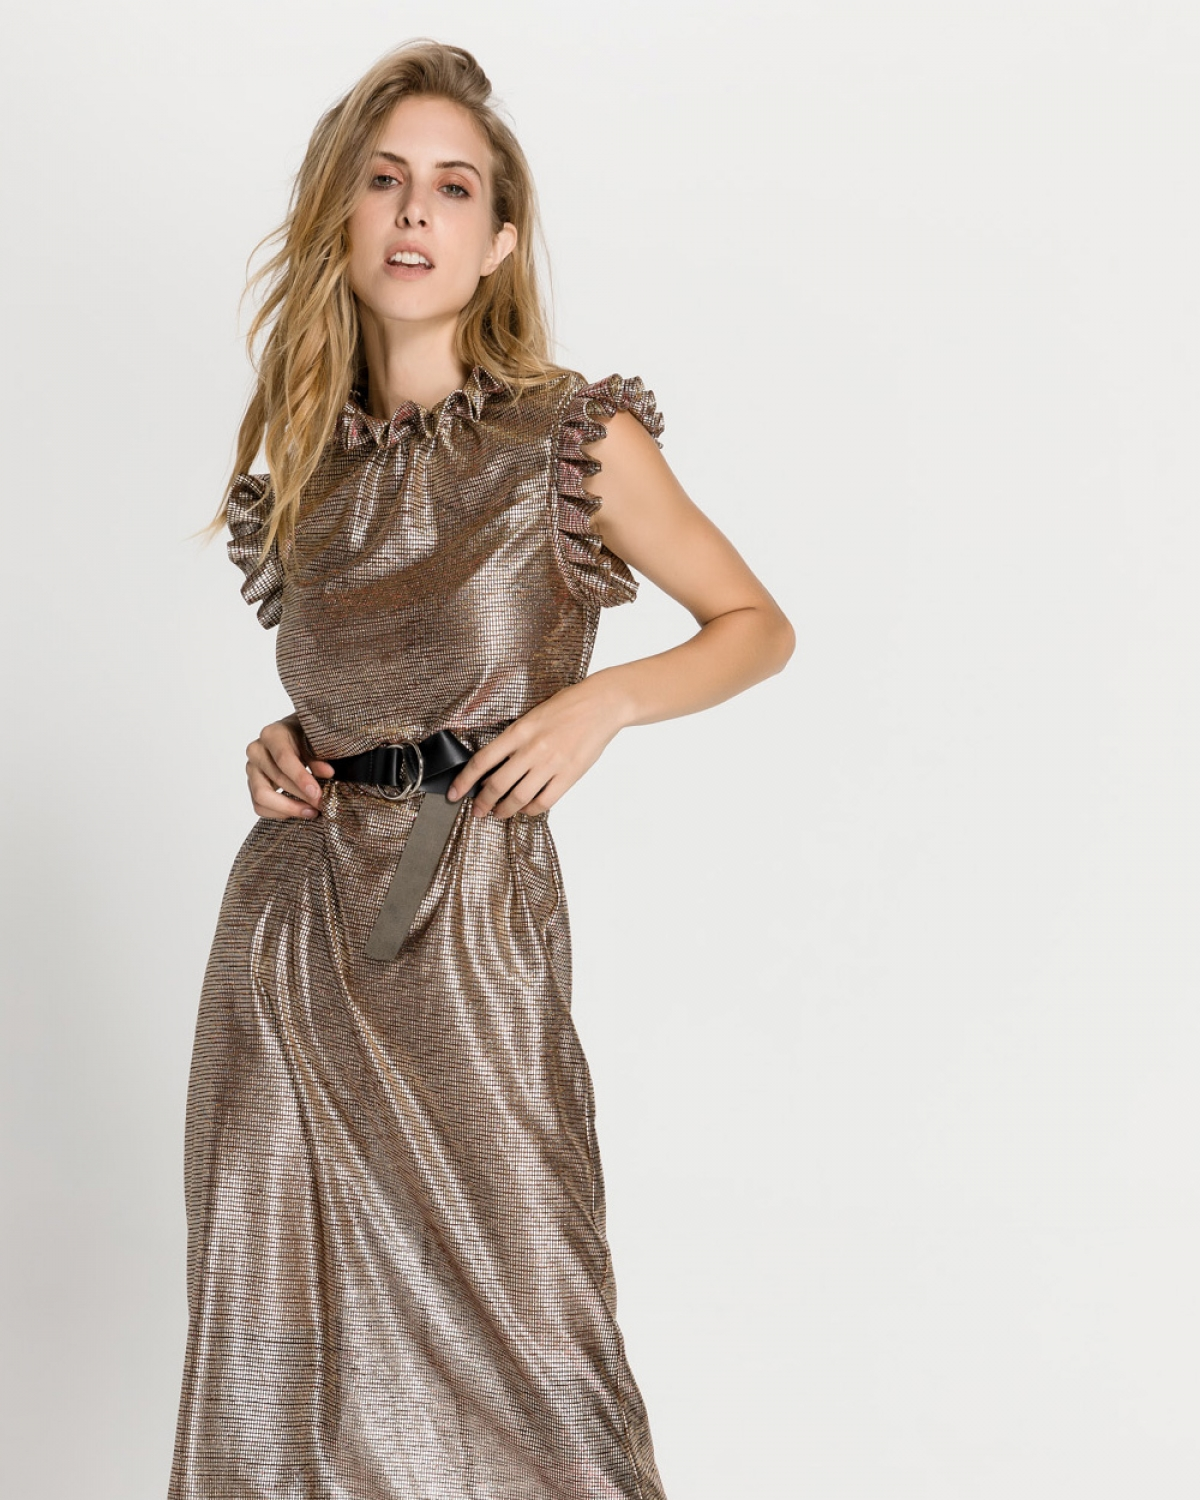 Lari Metallic Gold Dress